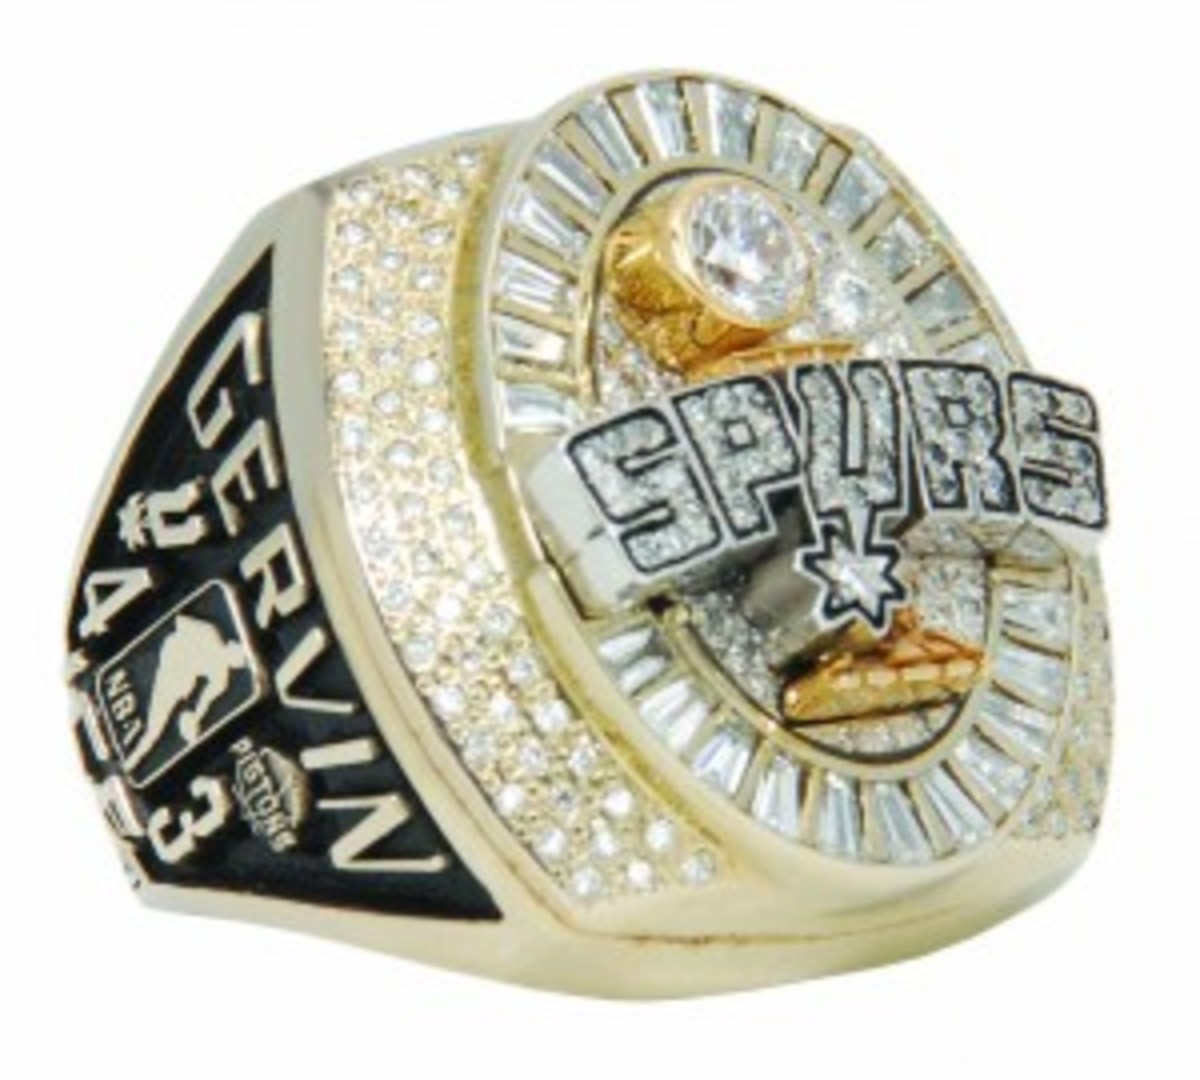 2005 George Gervin San Antonio Spurs Championship ring with original box, $54,000. Grey Flannel Auctions image.